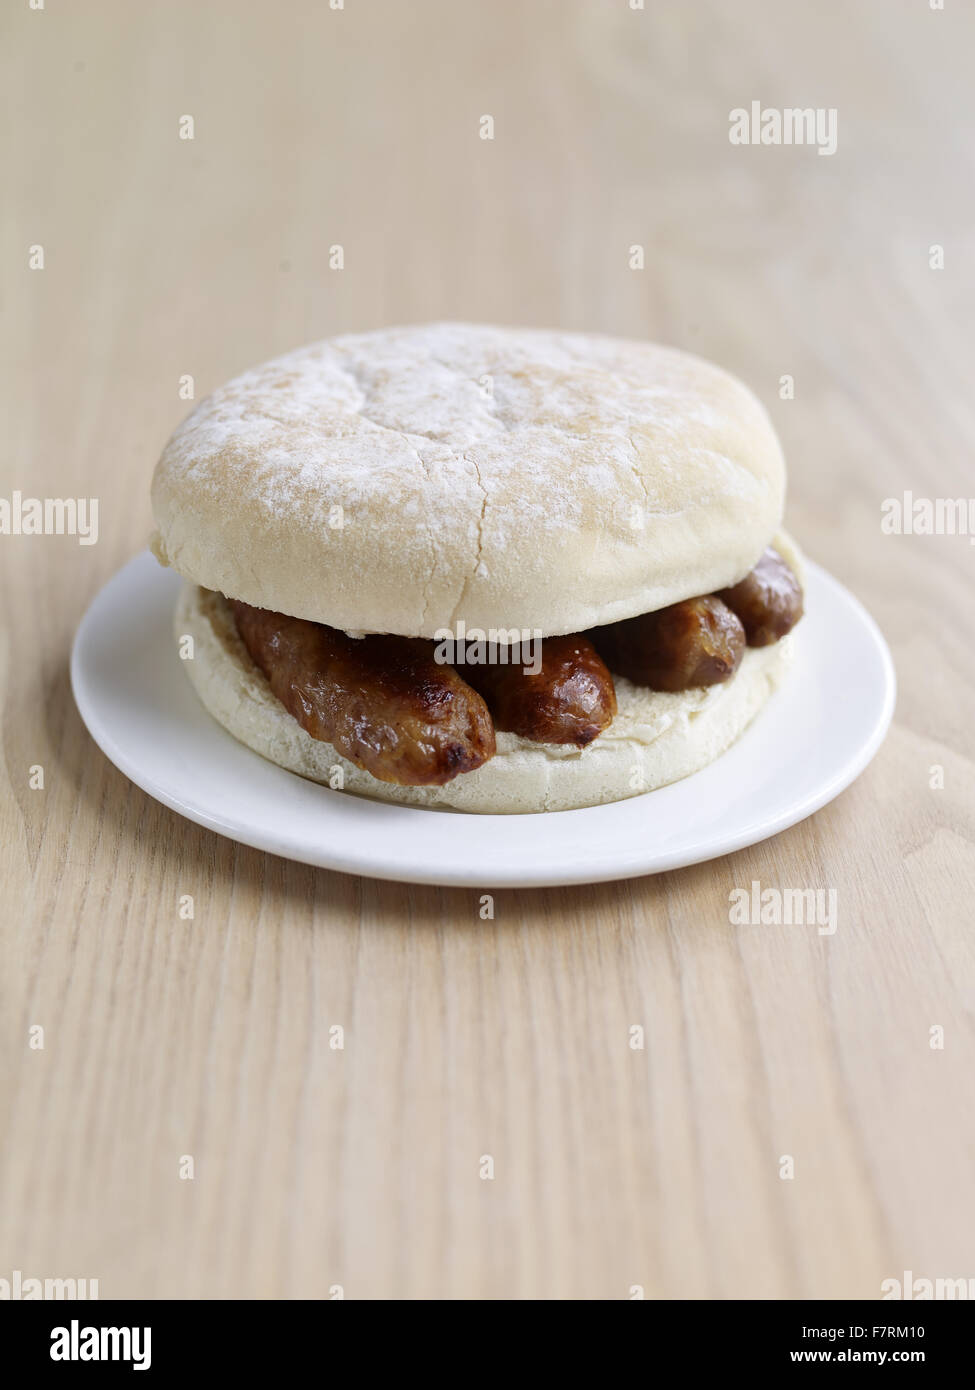 Sausage bap photographed for the 2015 National Trust Summer Cookbook. - Stock Image